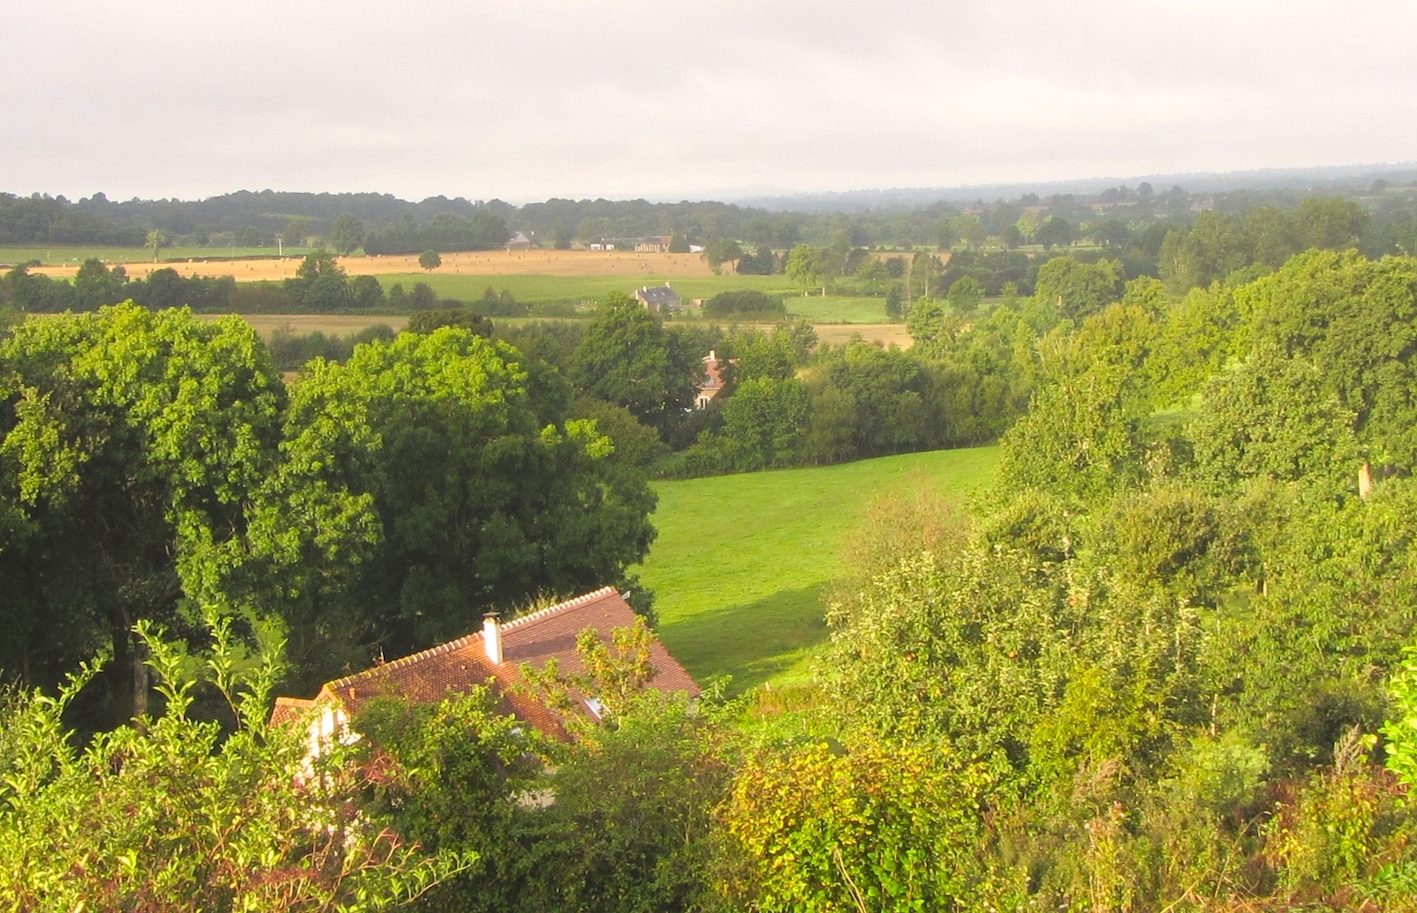 views from Le Choisel, Normandy, France